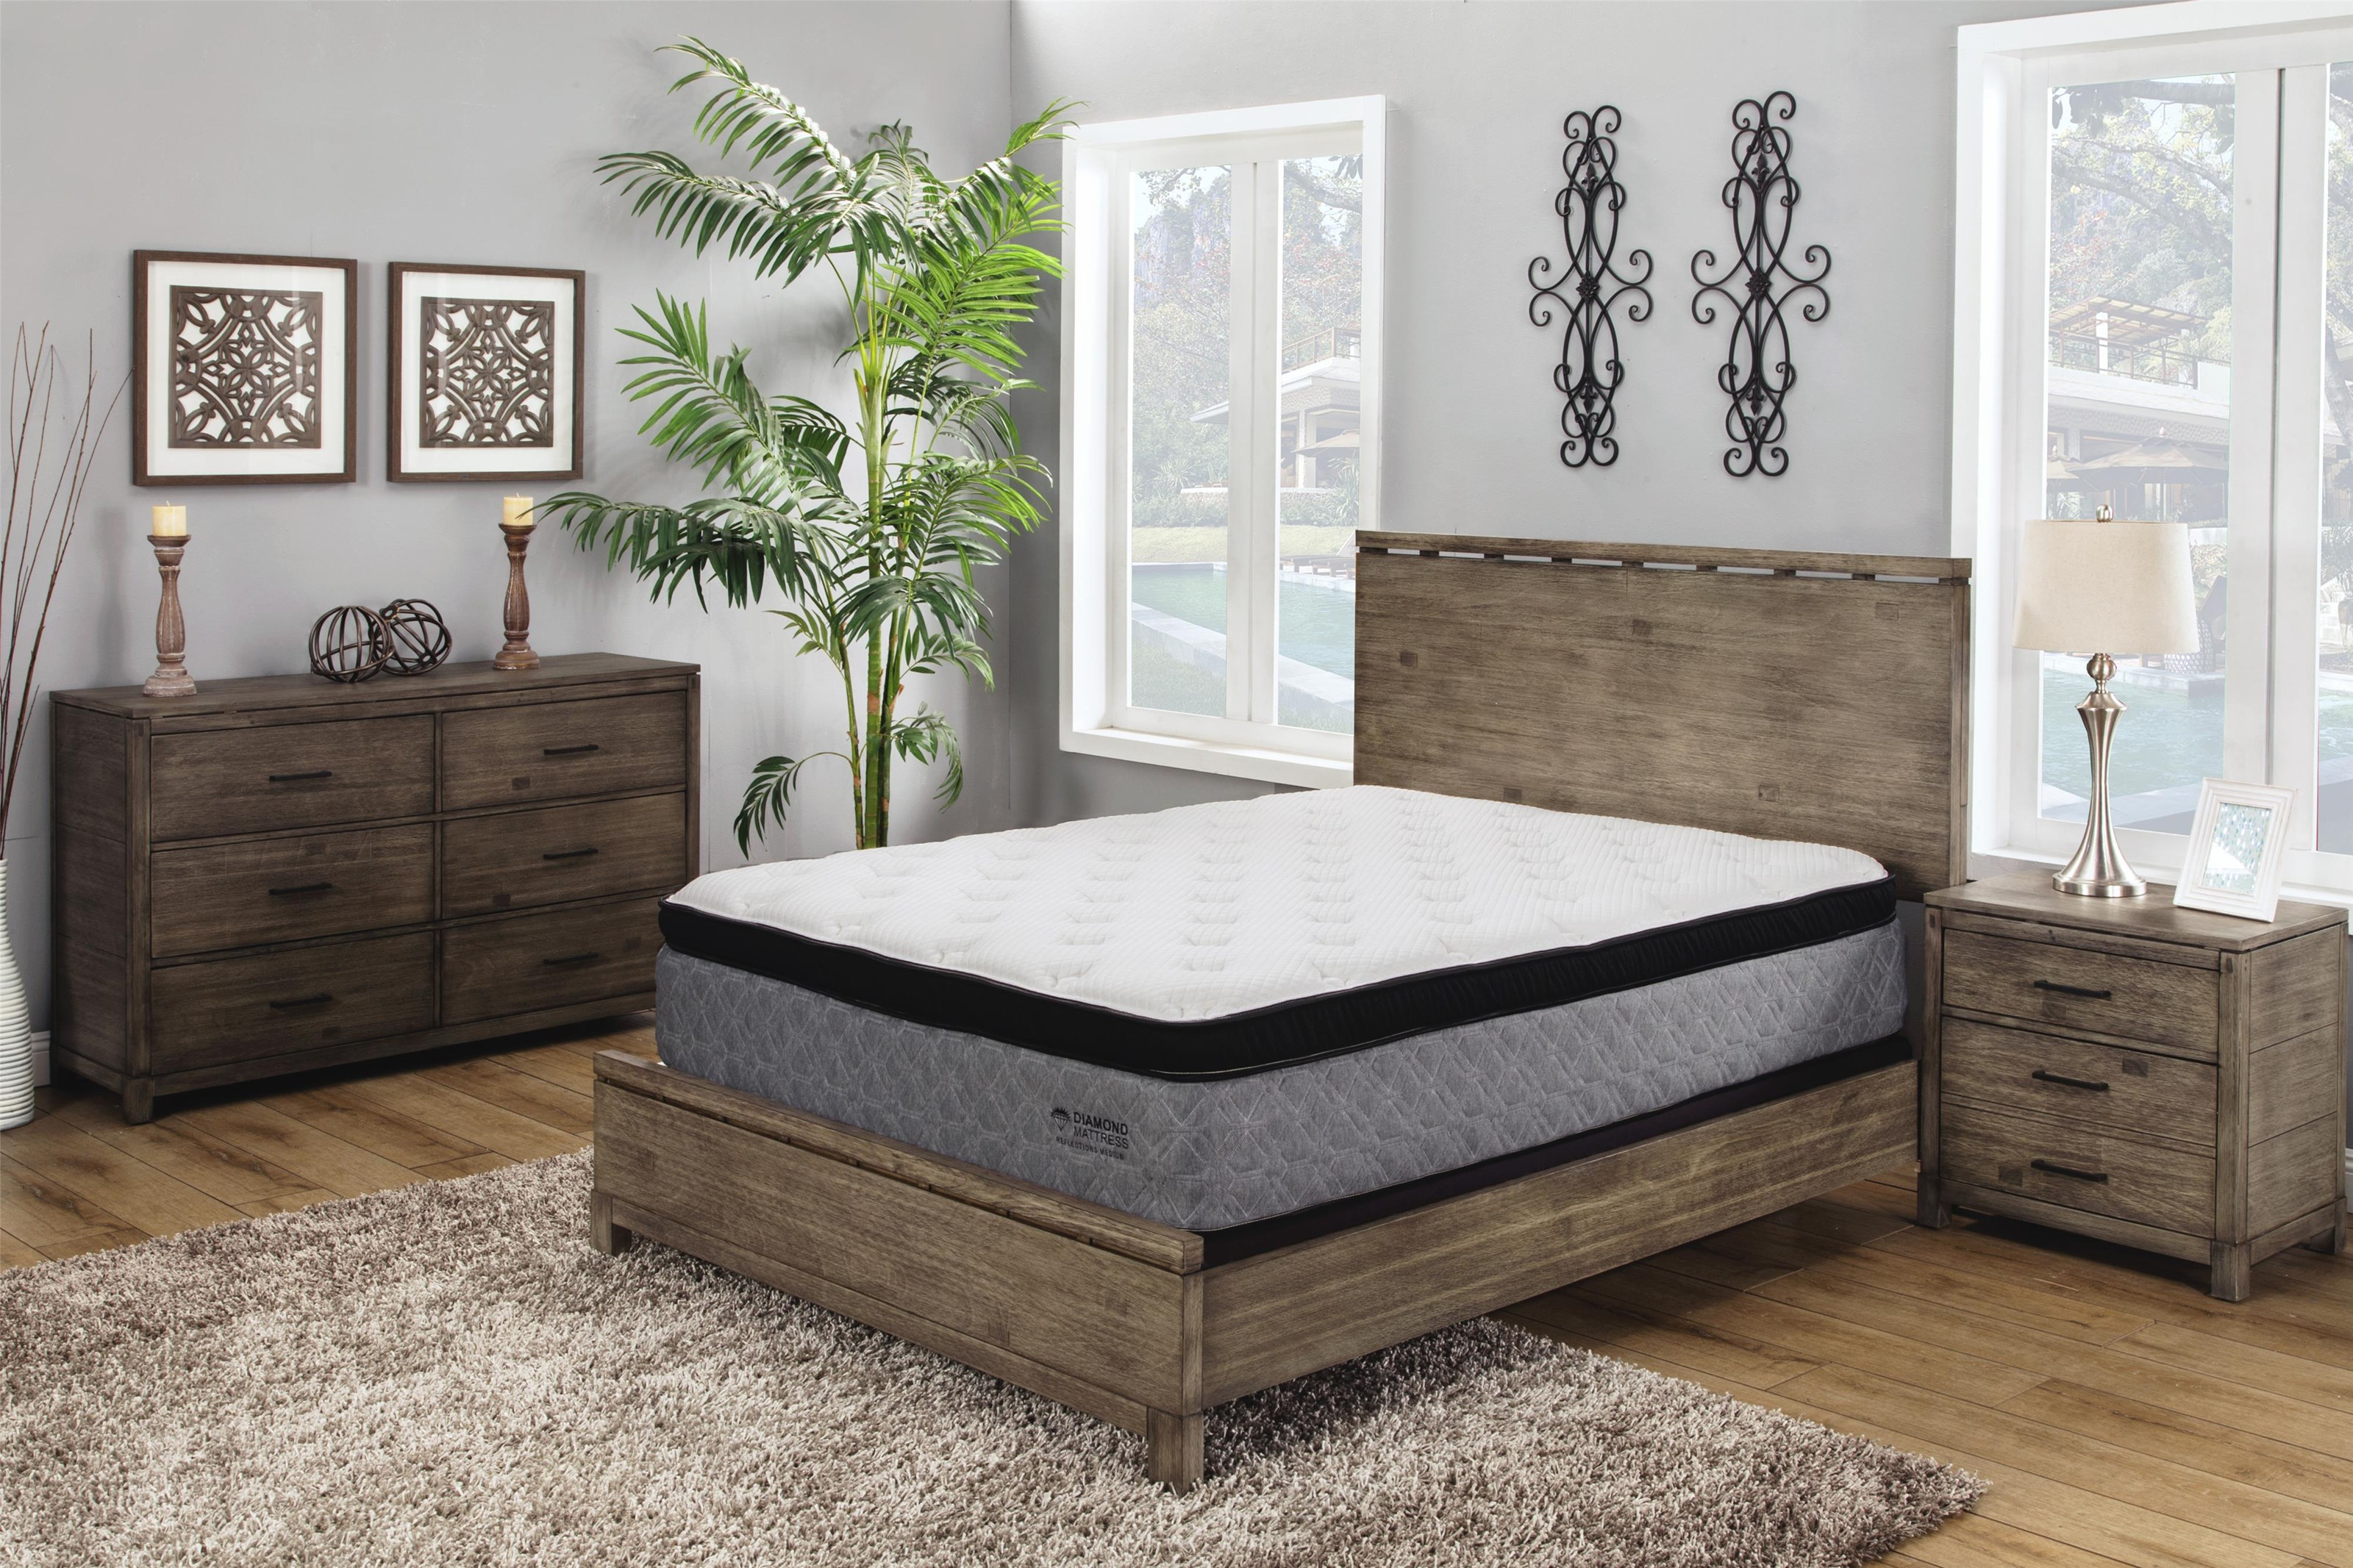 Midtown Cal King Medium Hybrid Cooling Mattress by Diamond Mattress at Beck's Furniture